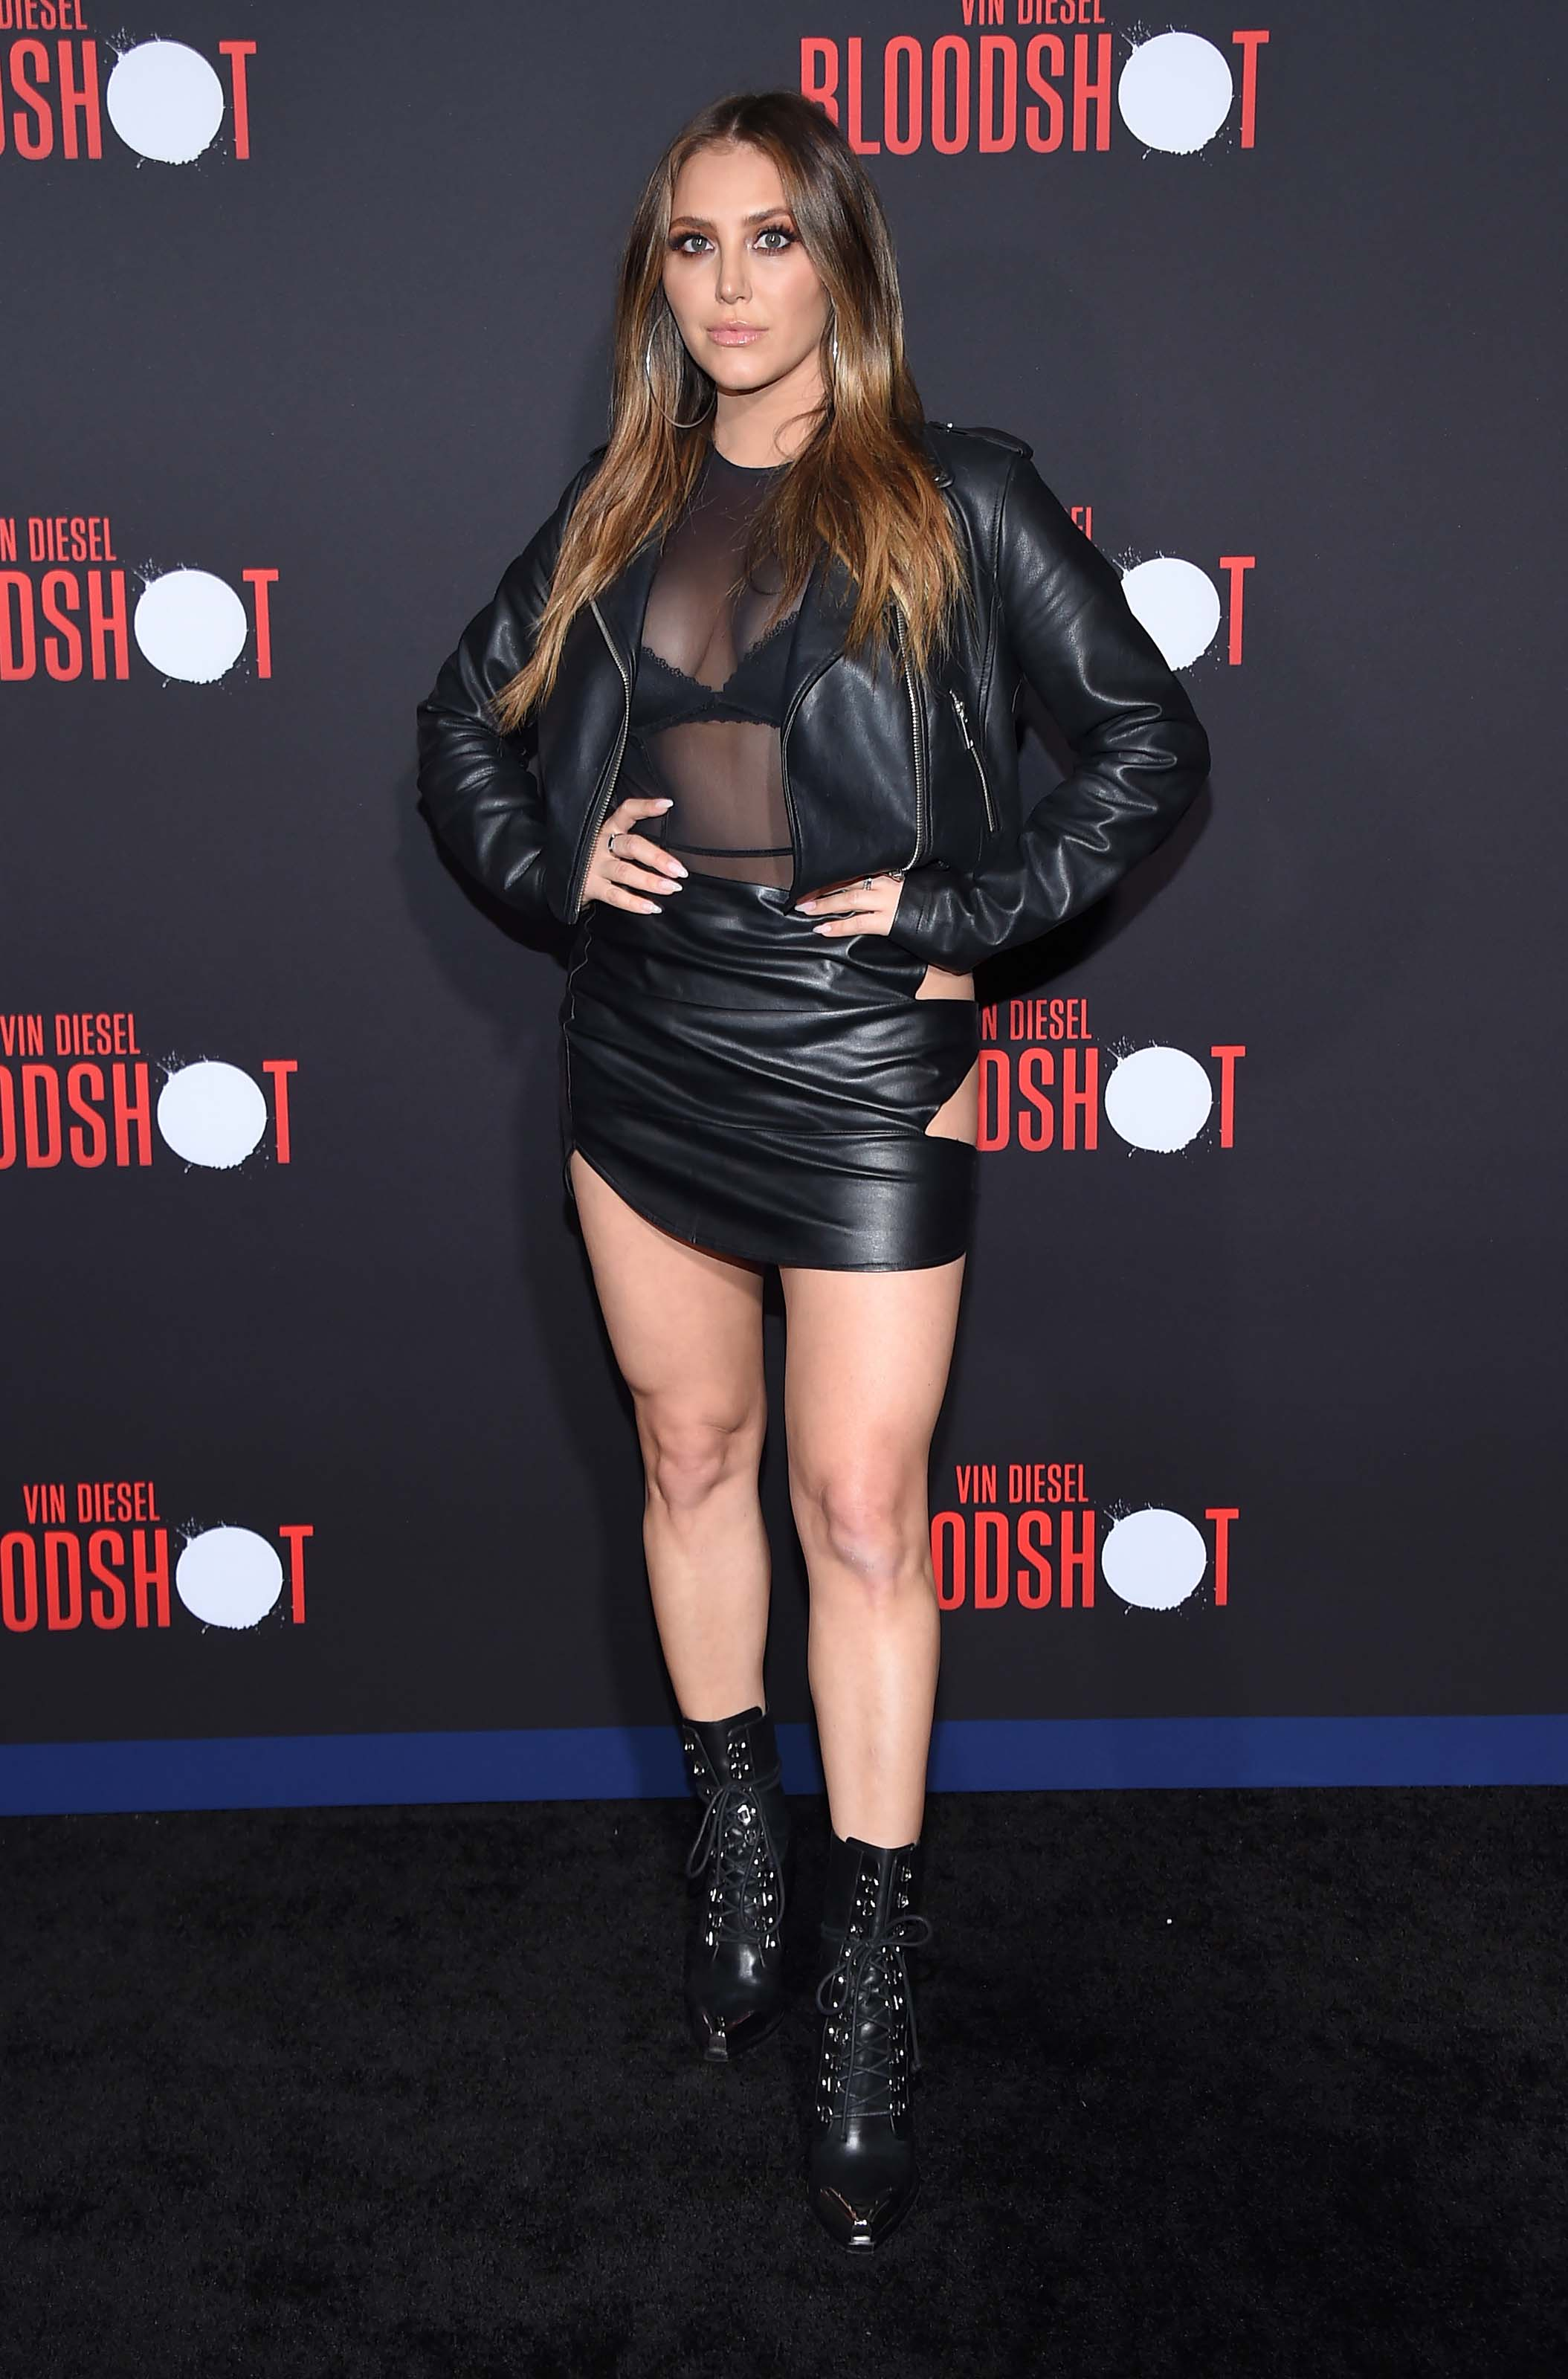 Cassie Scerbo at Bloodshot Los Angeles Premiere